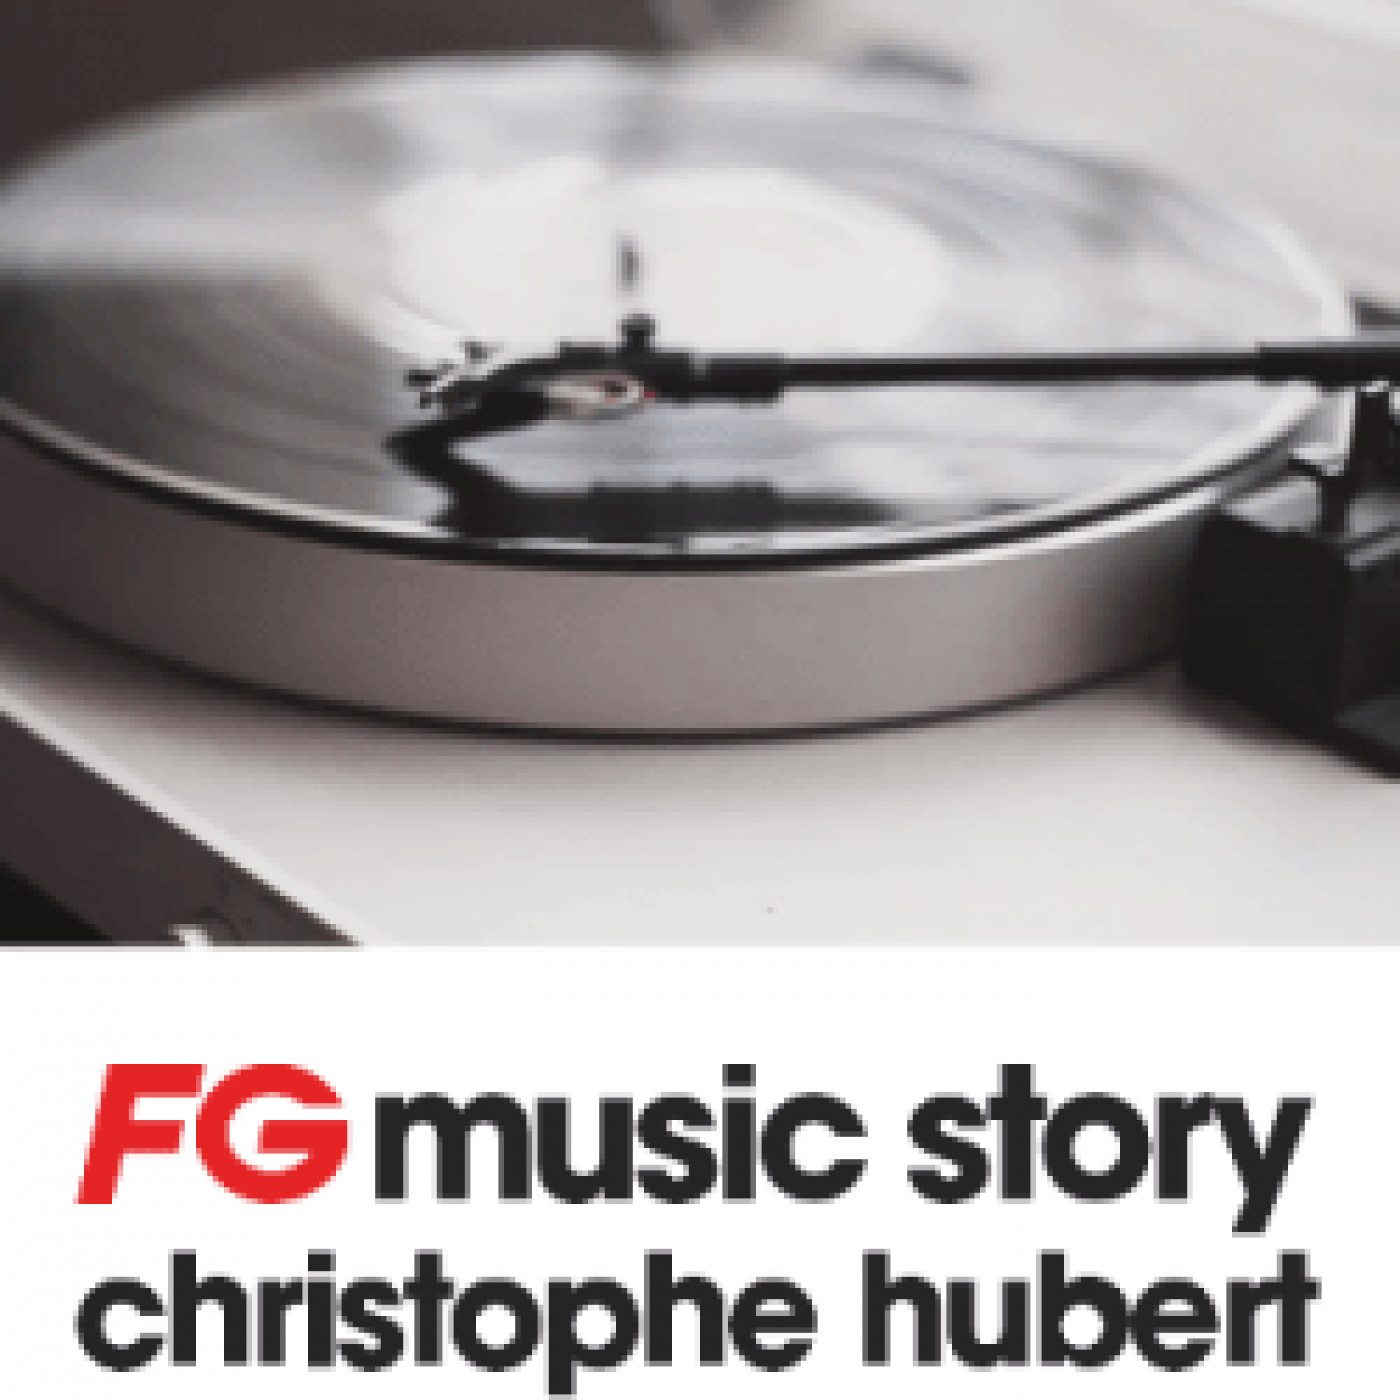 FG MUSIC STORY : FACTORY